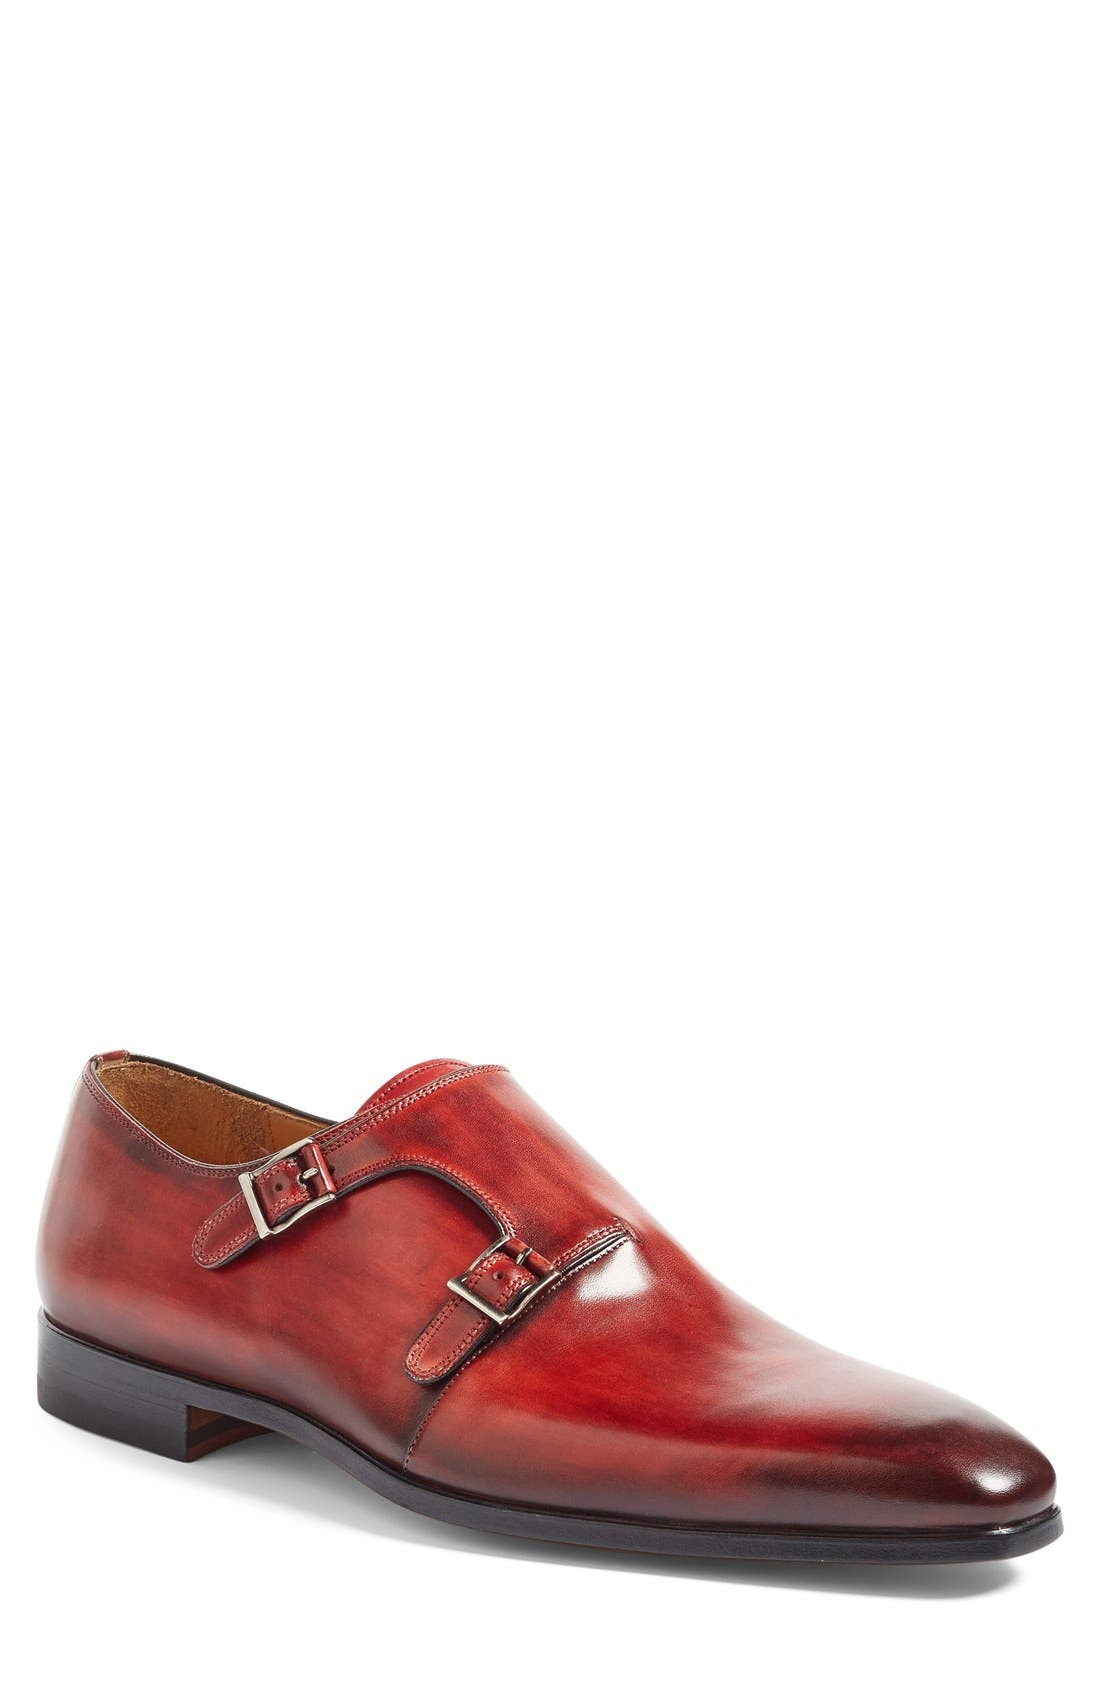 Jamin Double Monk Strap Shoe,                         Main,                         color, Red Leather